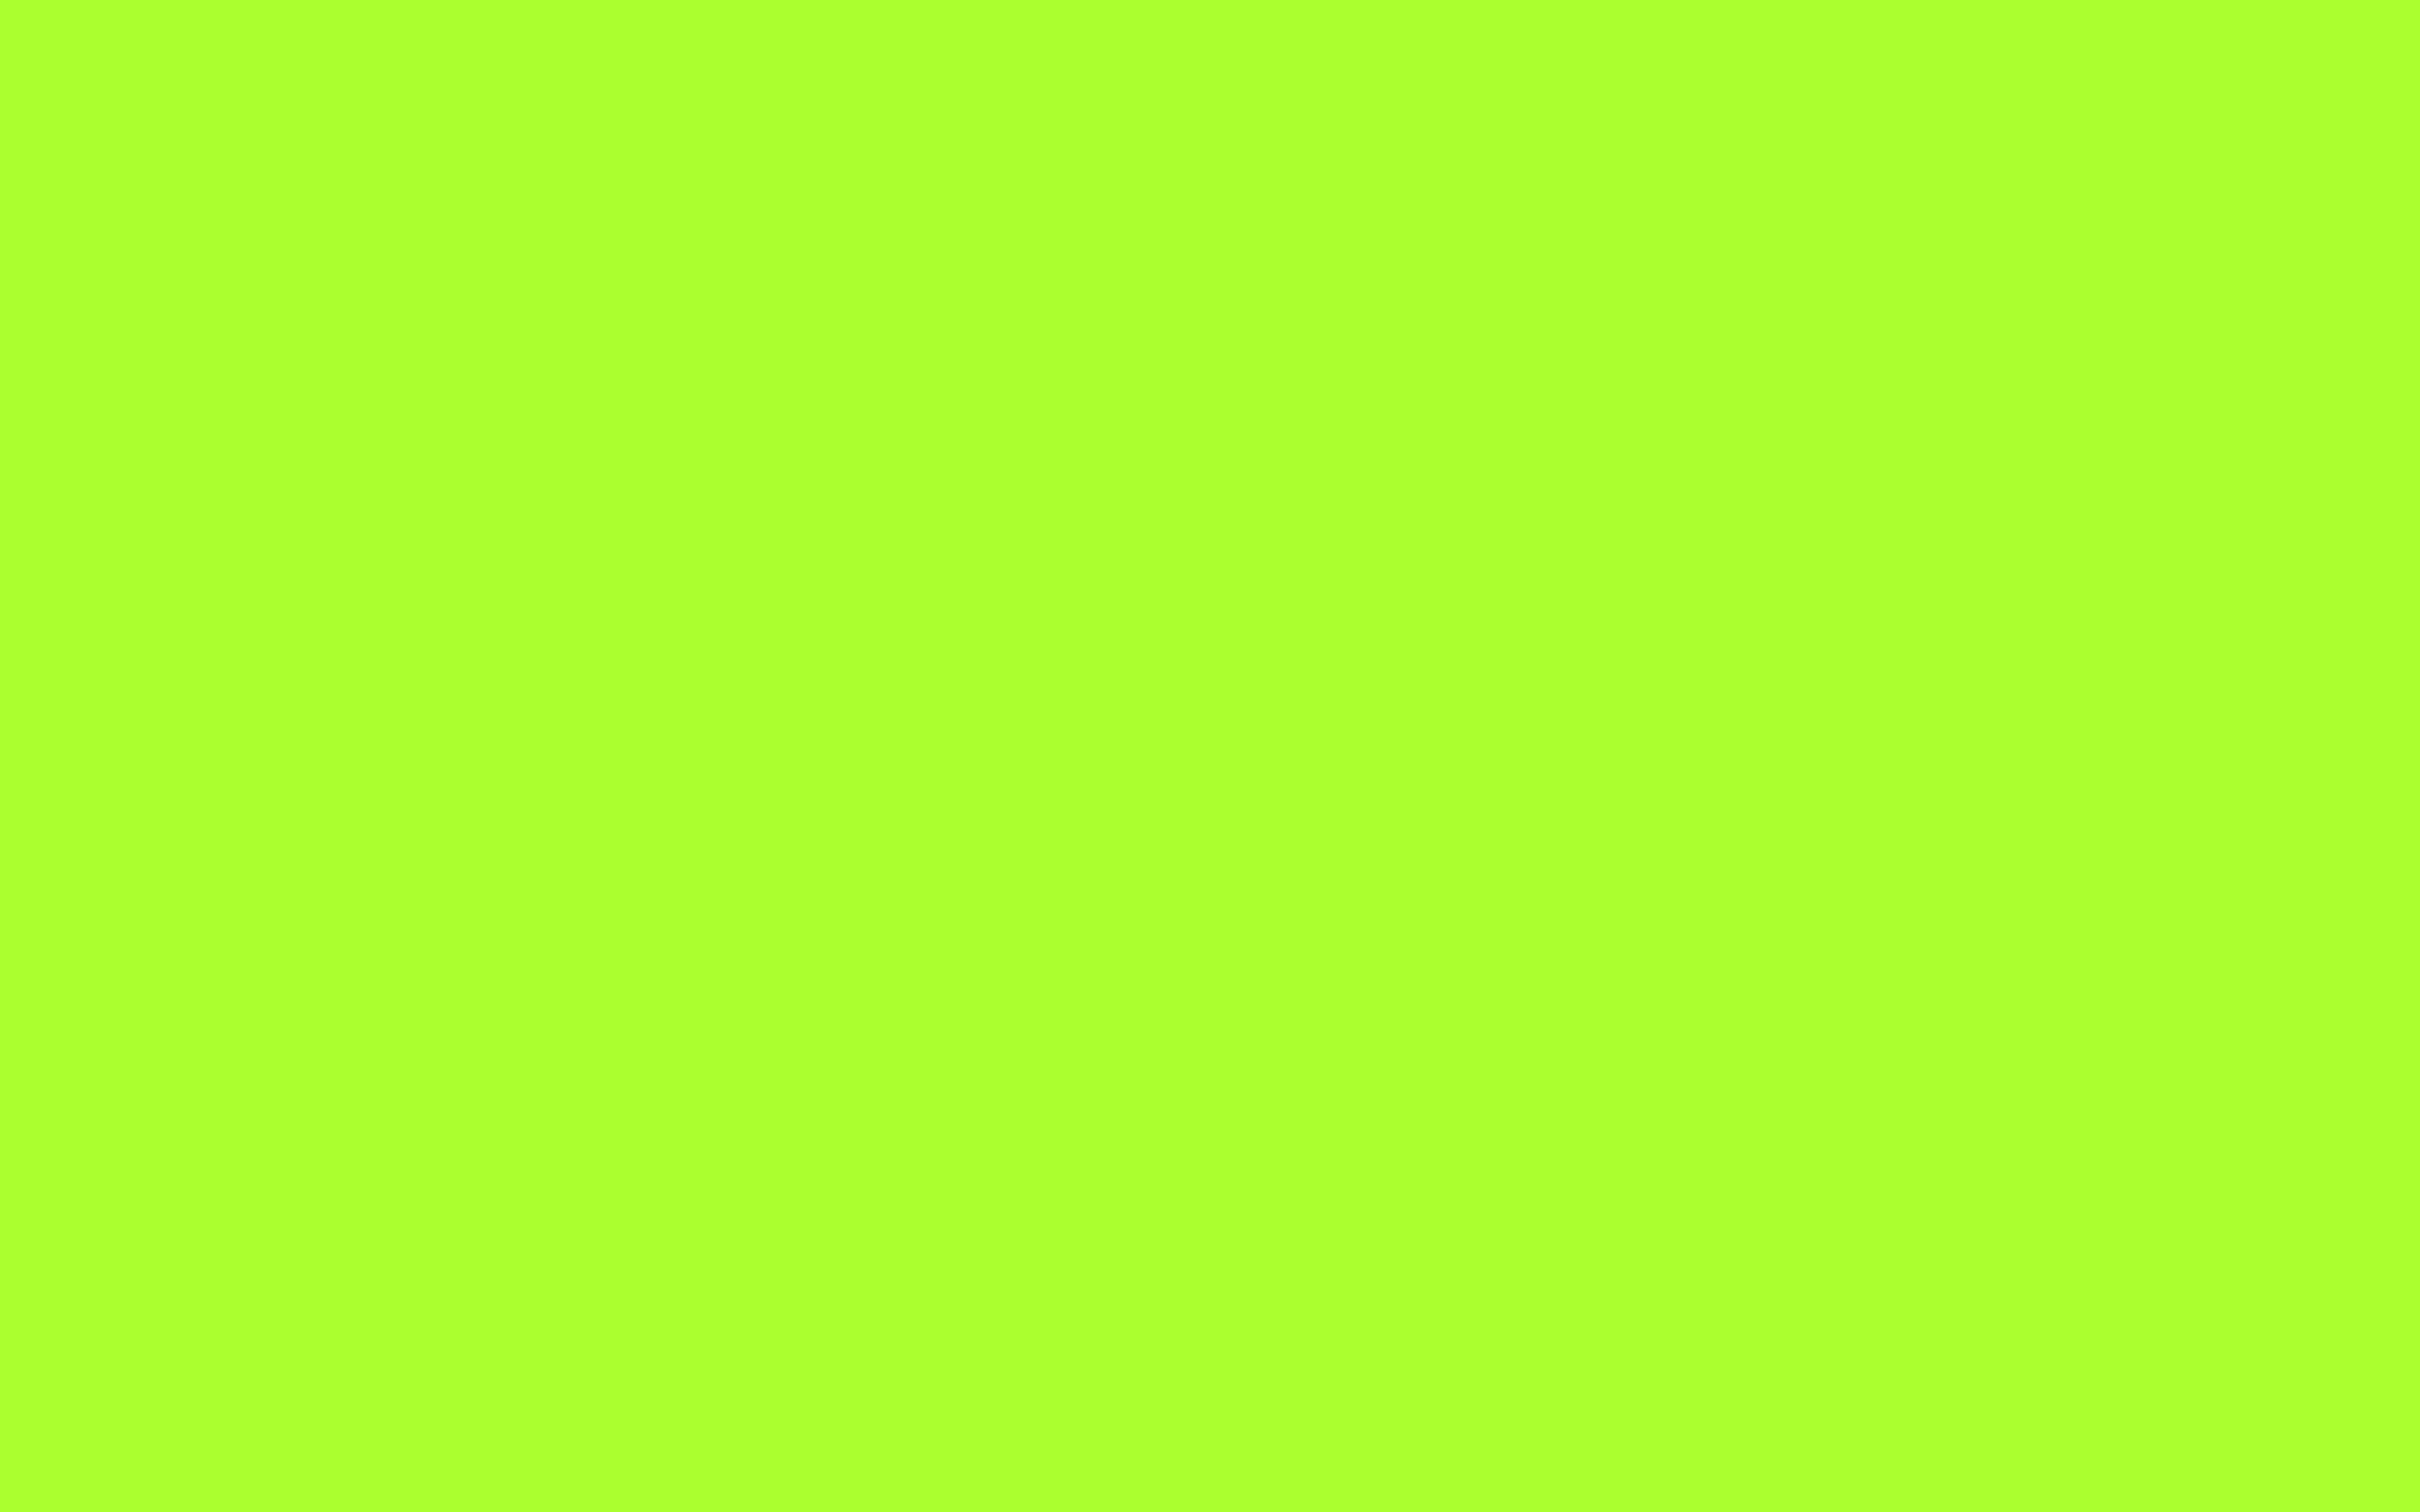 2880x1800 Green-yellow Solid Color Background